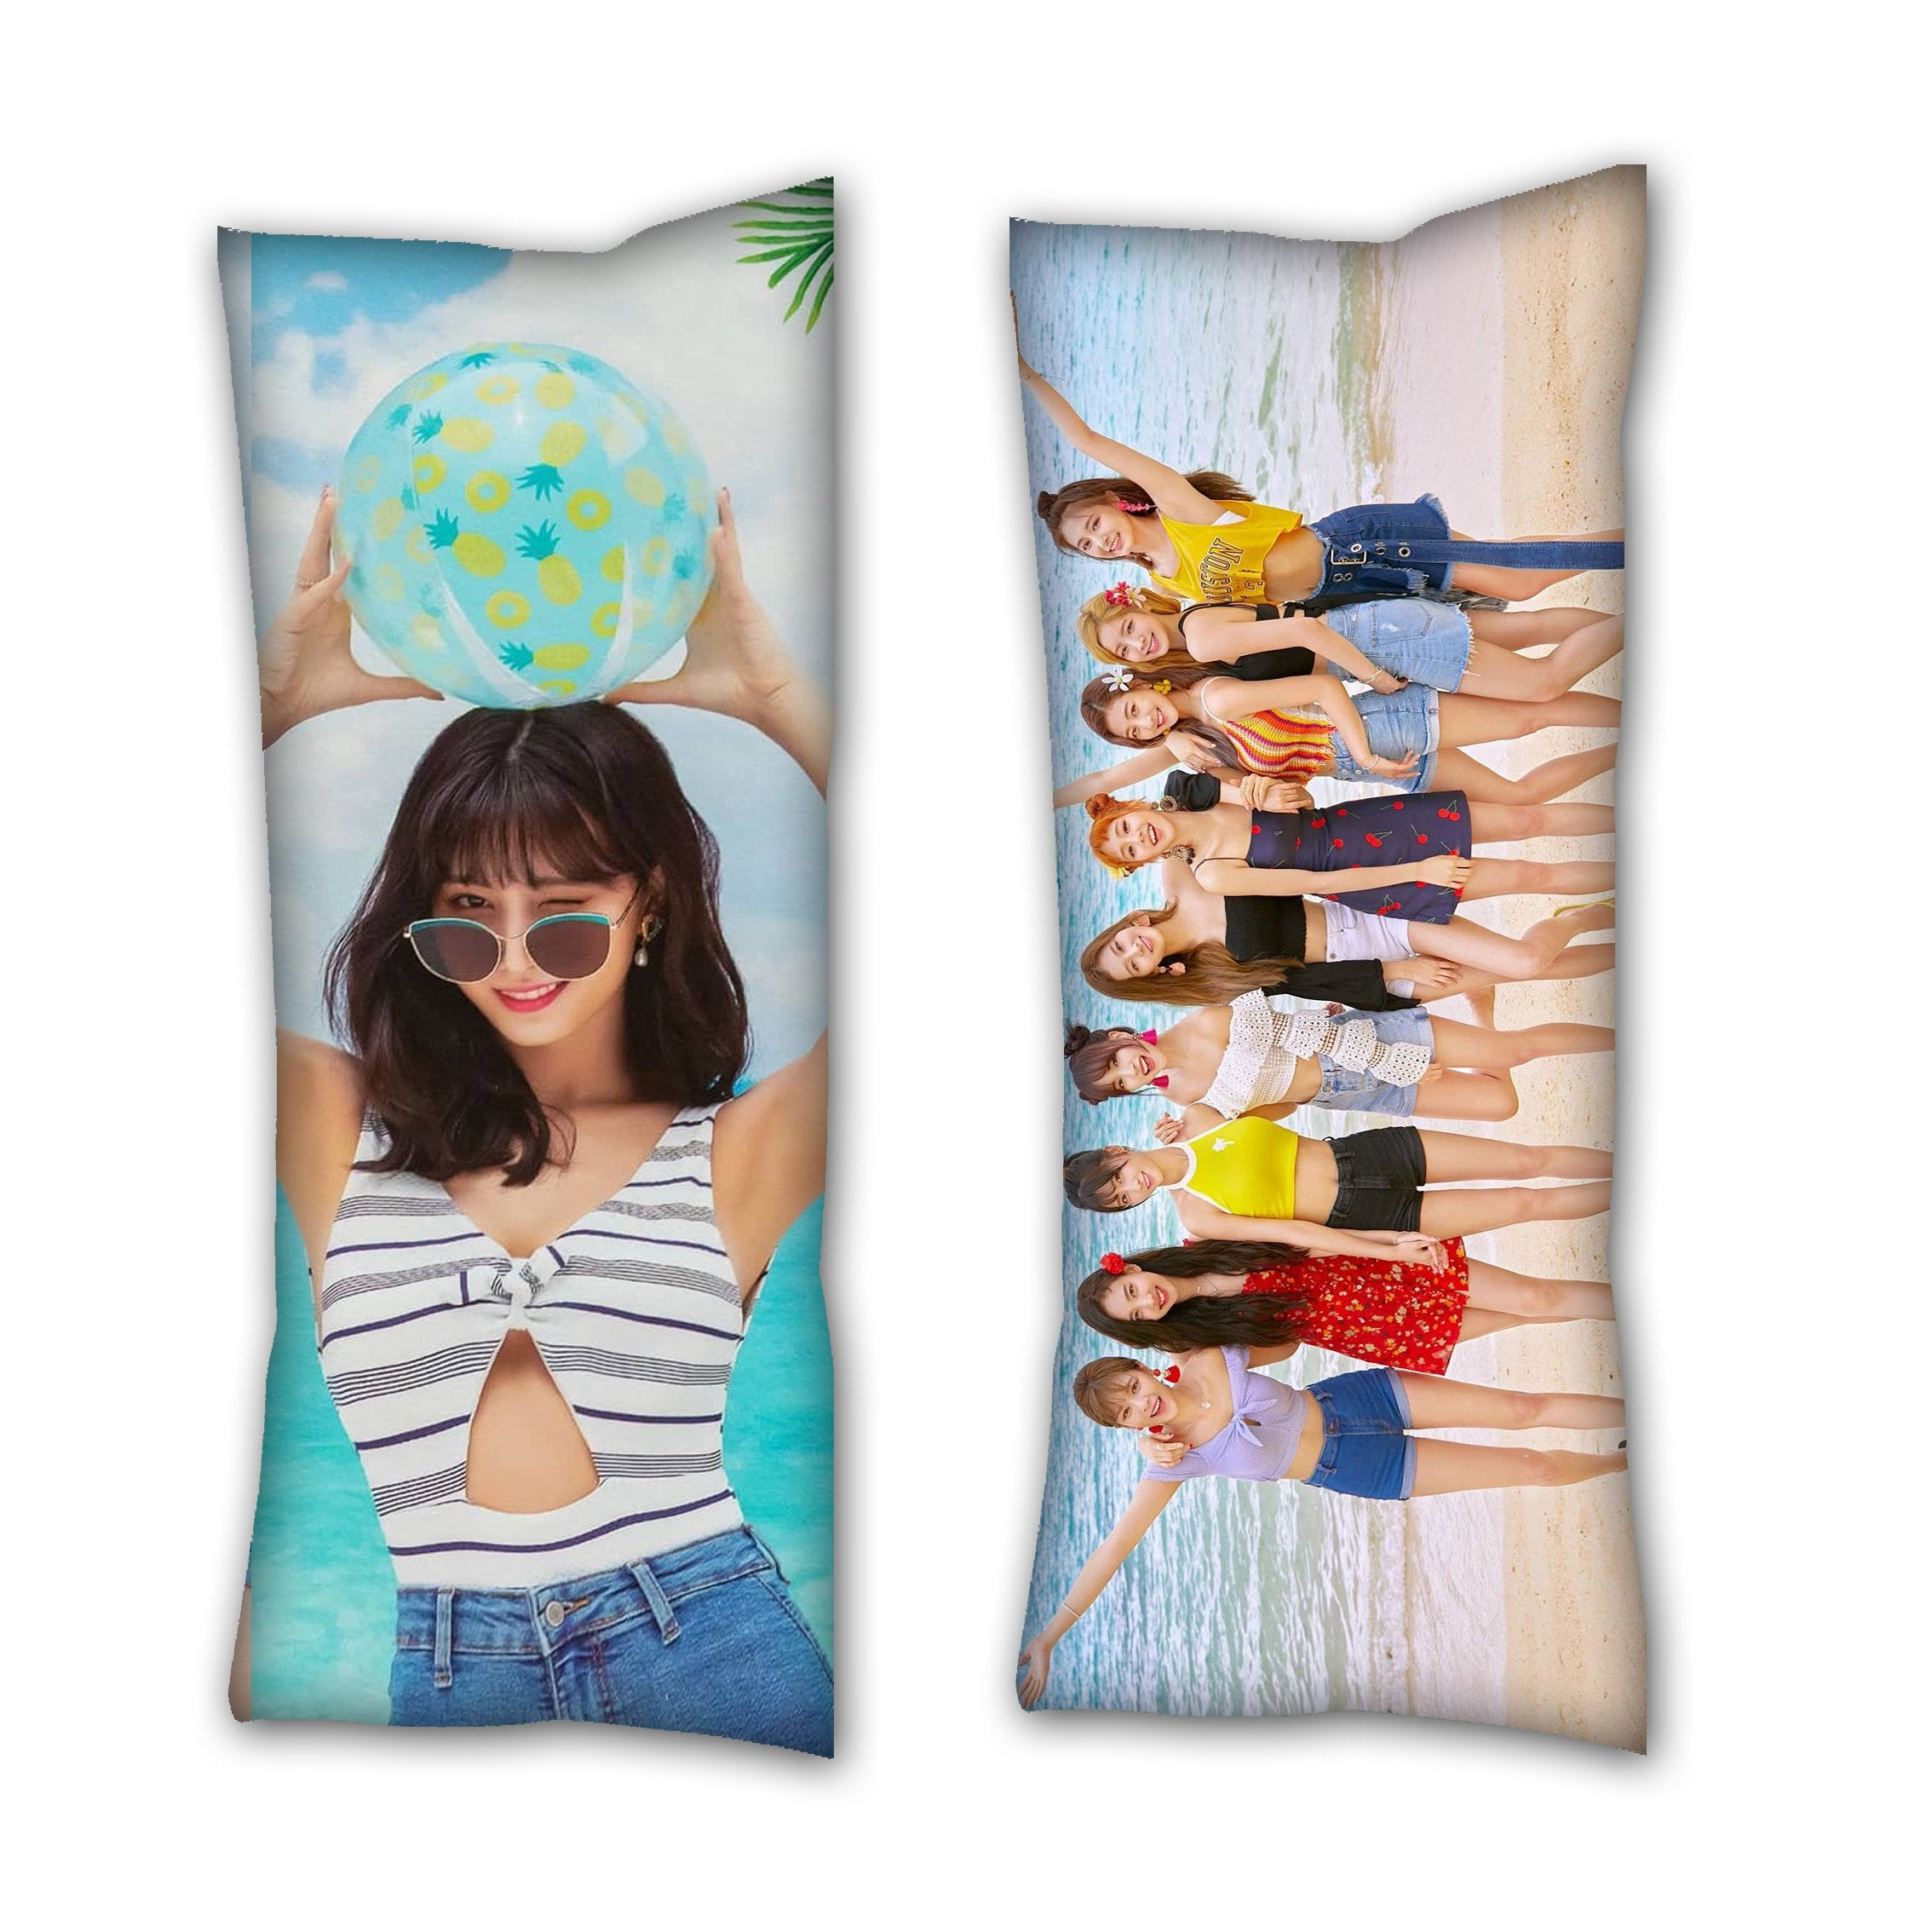 Twice - 'Summer Night' Momo Body Pillow